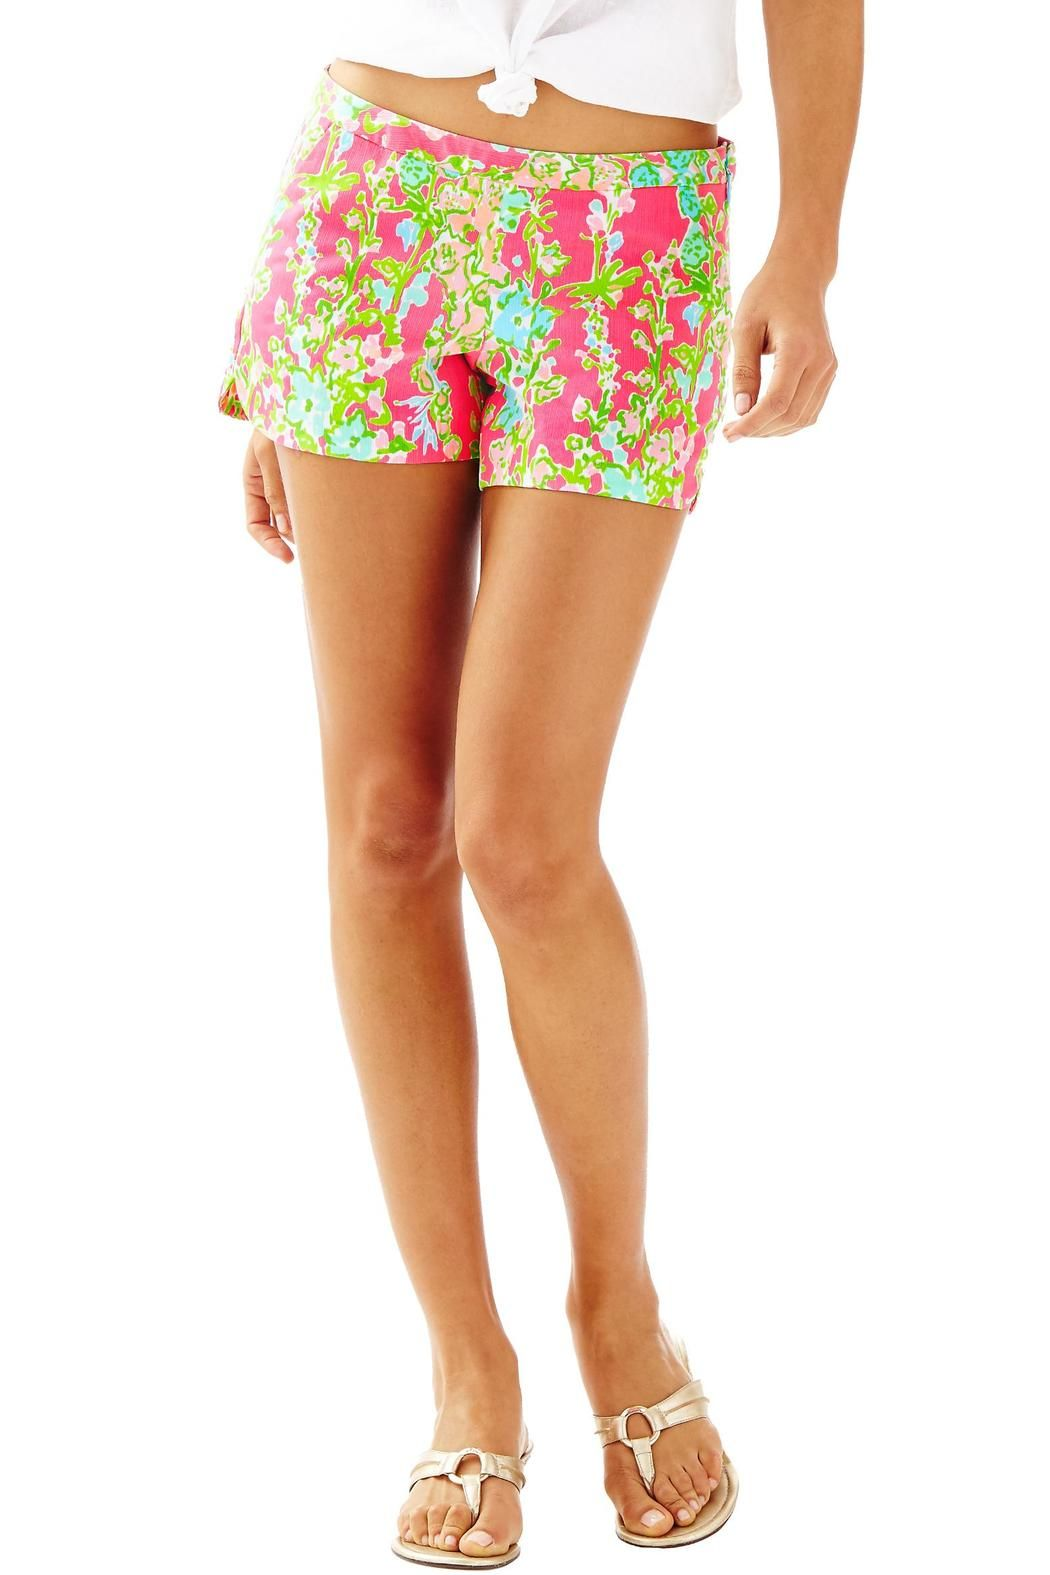 c6b646fa6dca93 The Addie Short is a 4 inch printed short and our newest length at Lilly.